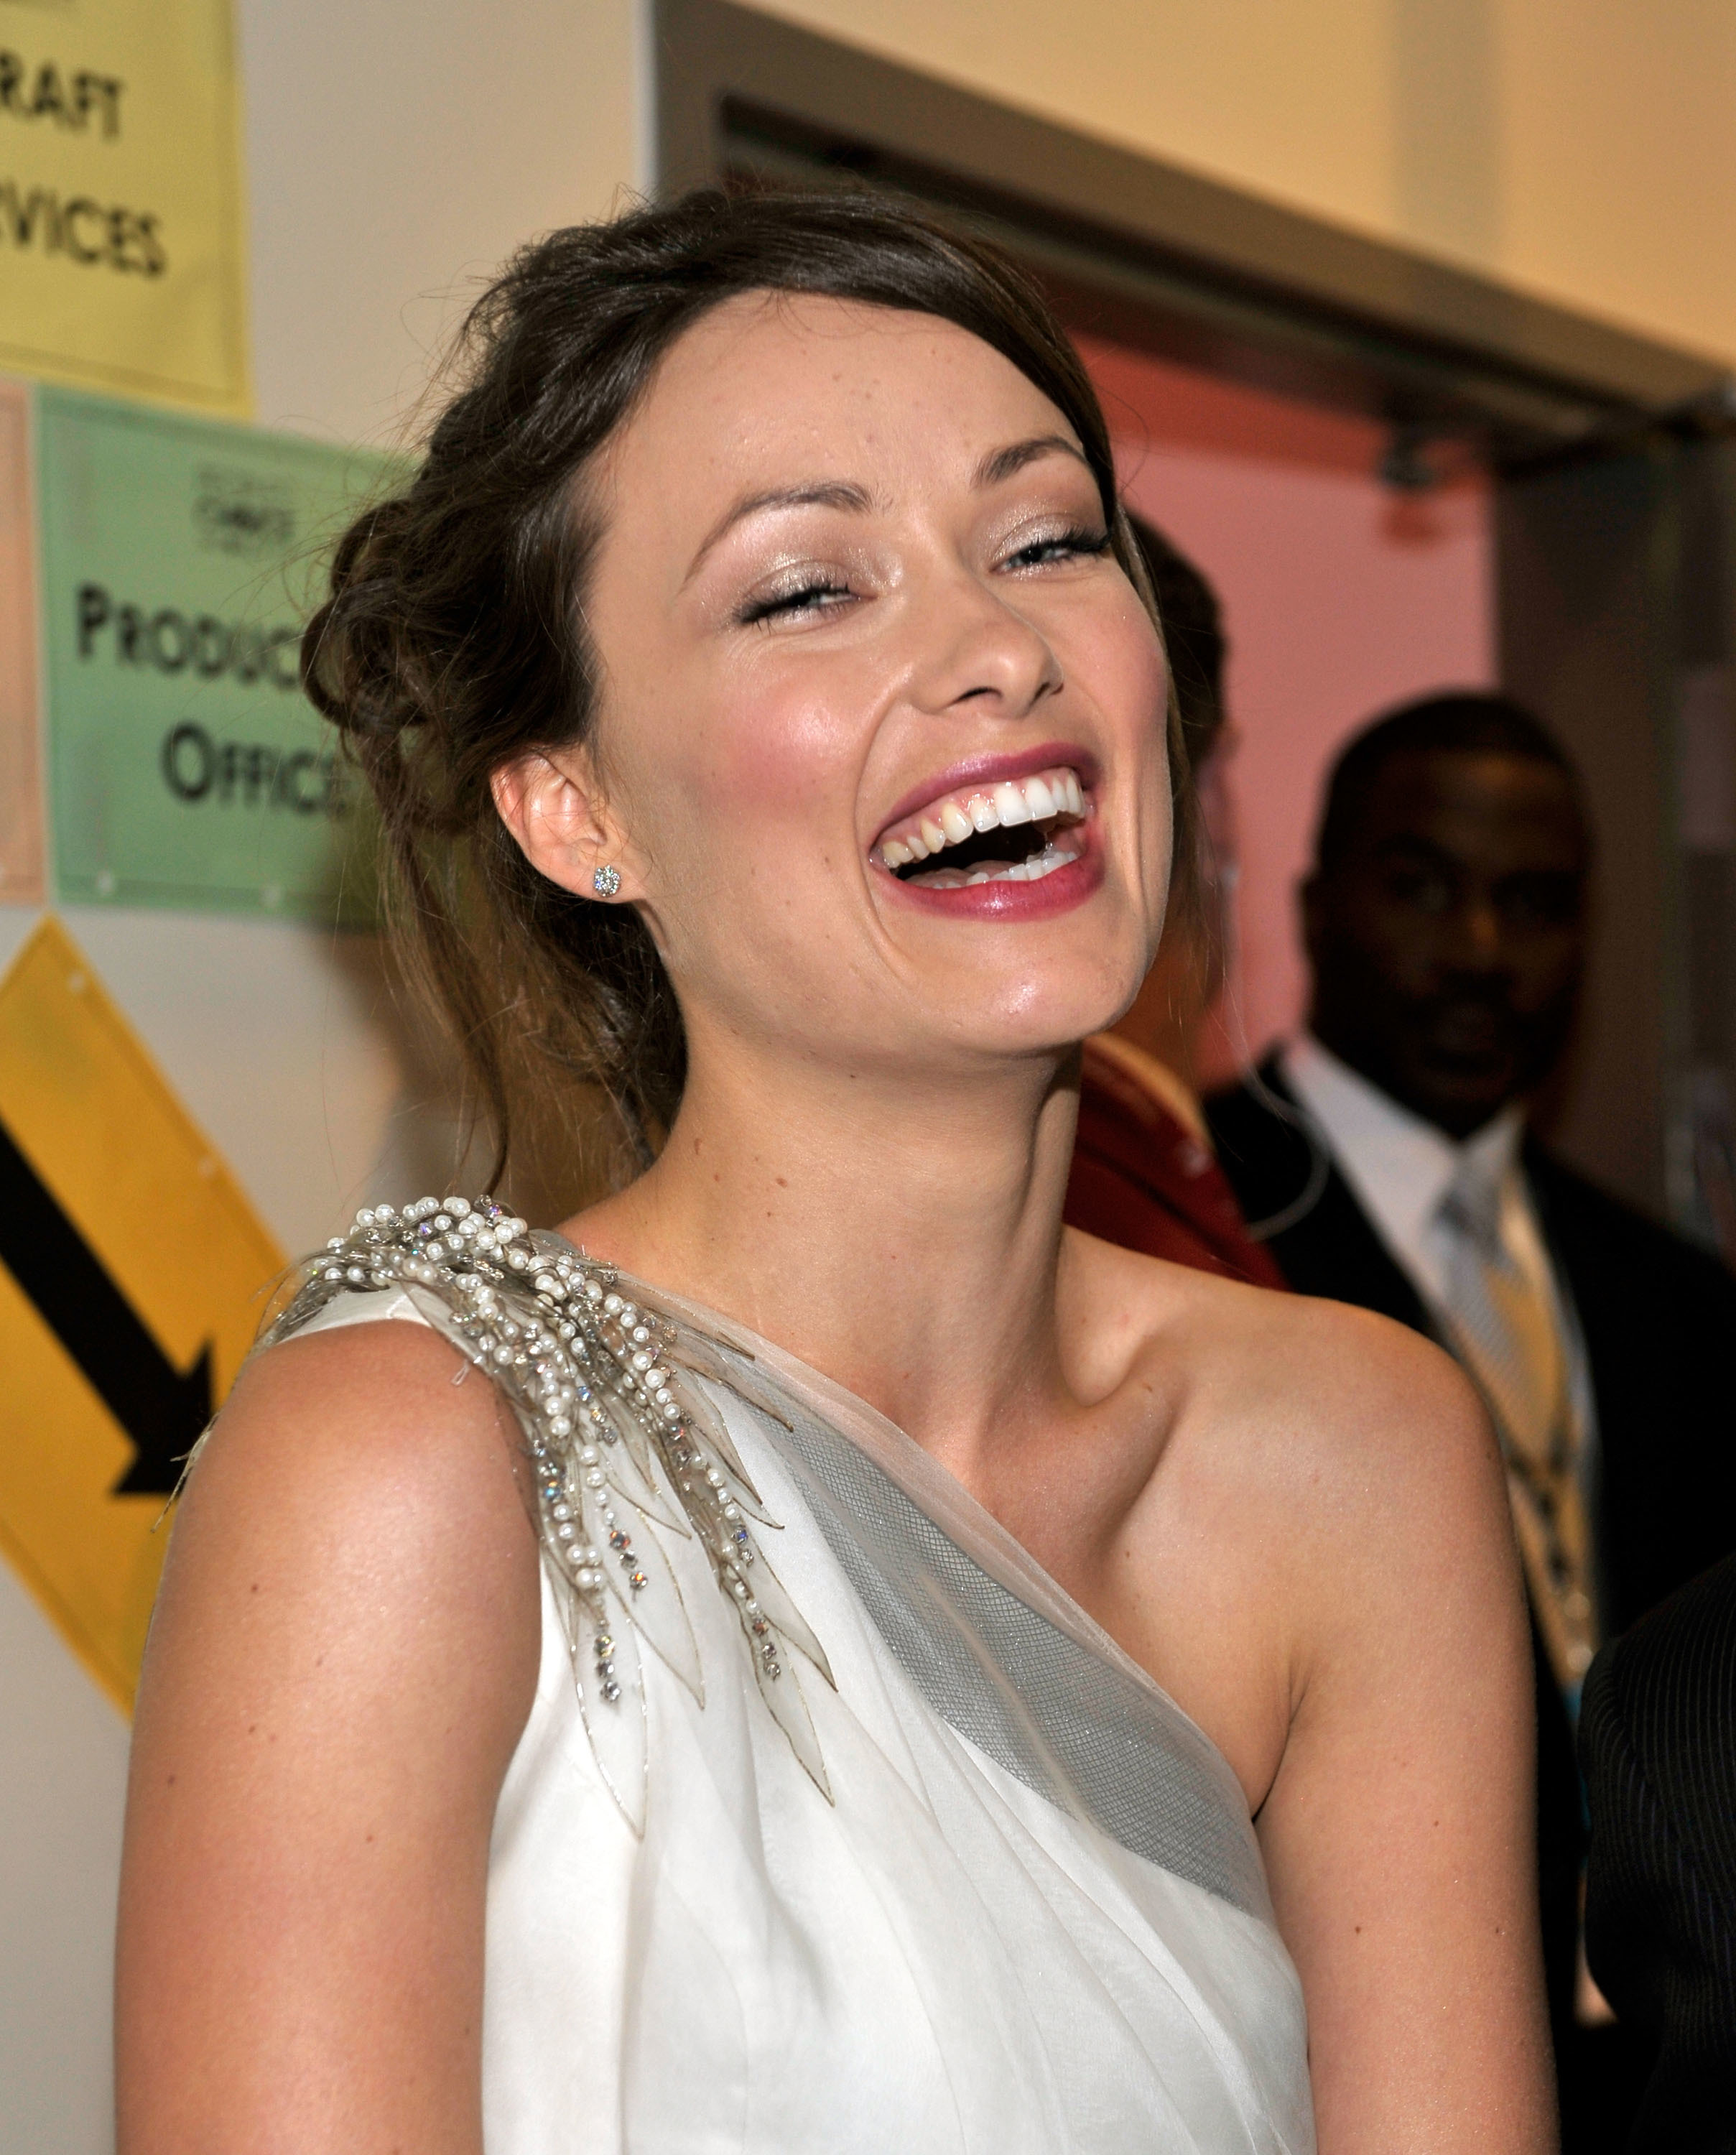 Women olivia Wilde laughing HD Wallpaper